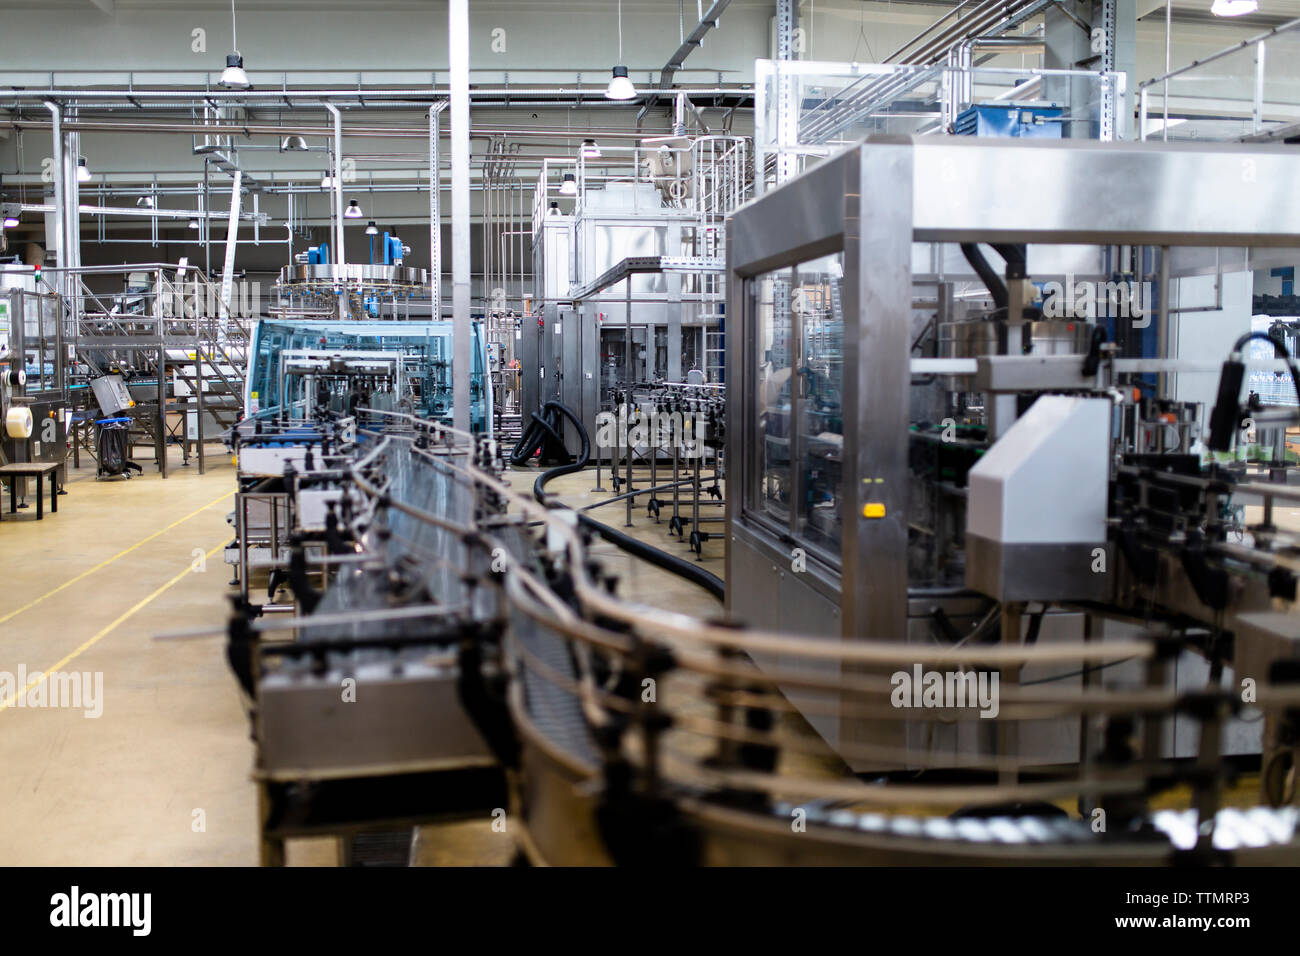 Food Processing Plants Stock Photos & Food Processing Plants Stock